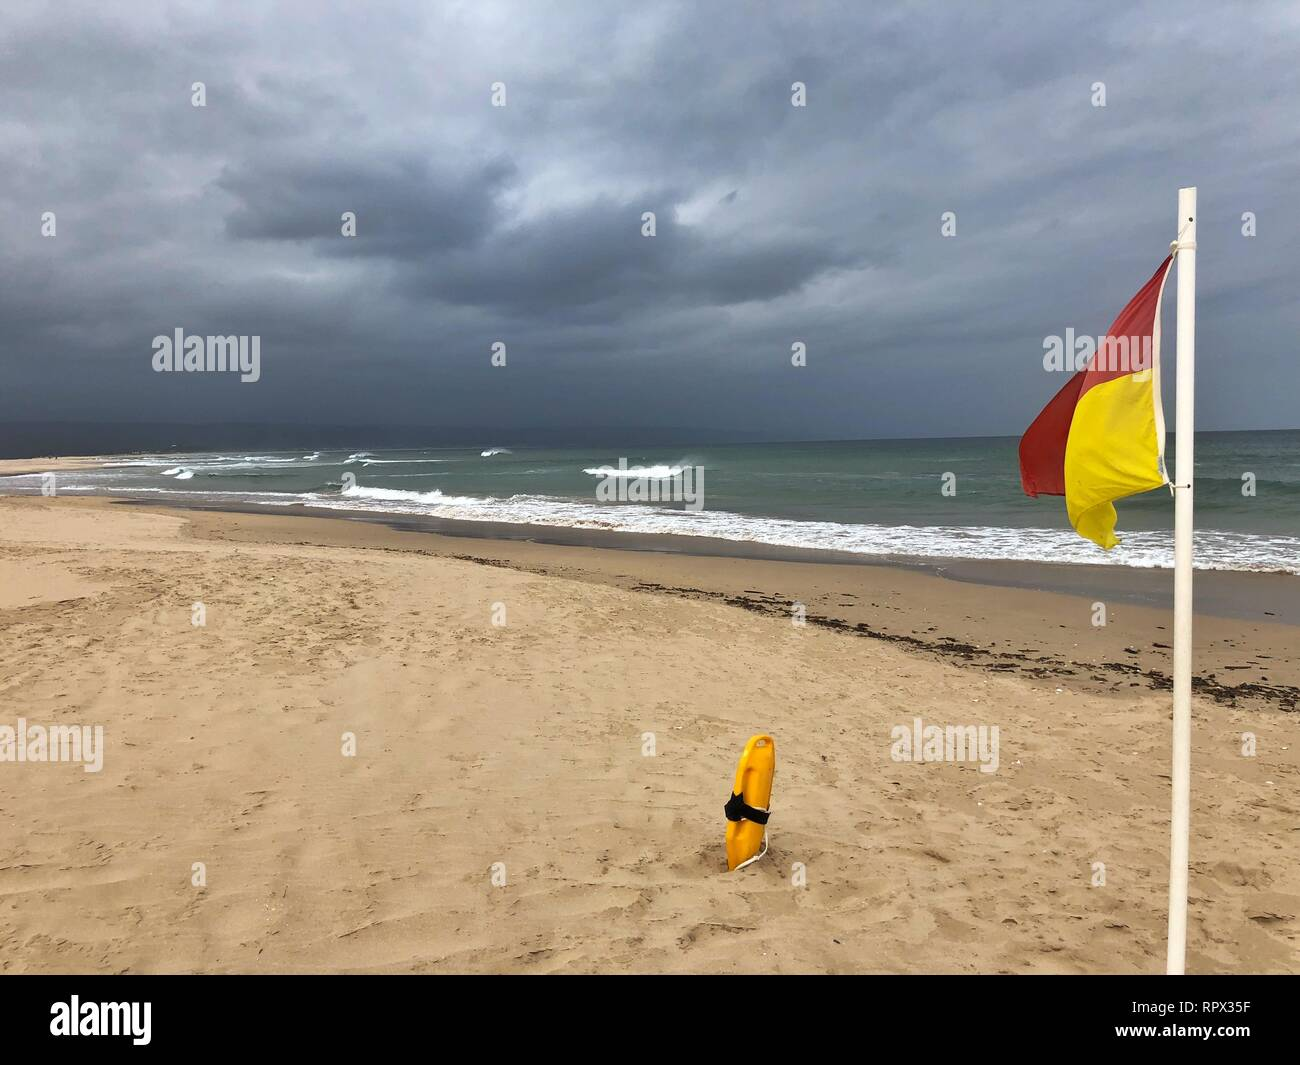 Lifeguard on patrol flags and a rescue buoy, Lookout Beach, Plettenberg Bay, Western Cape, South Africa Stock Photo